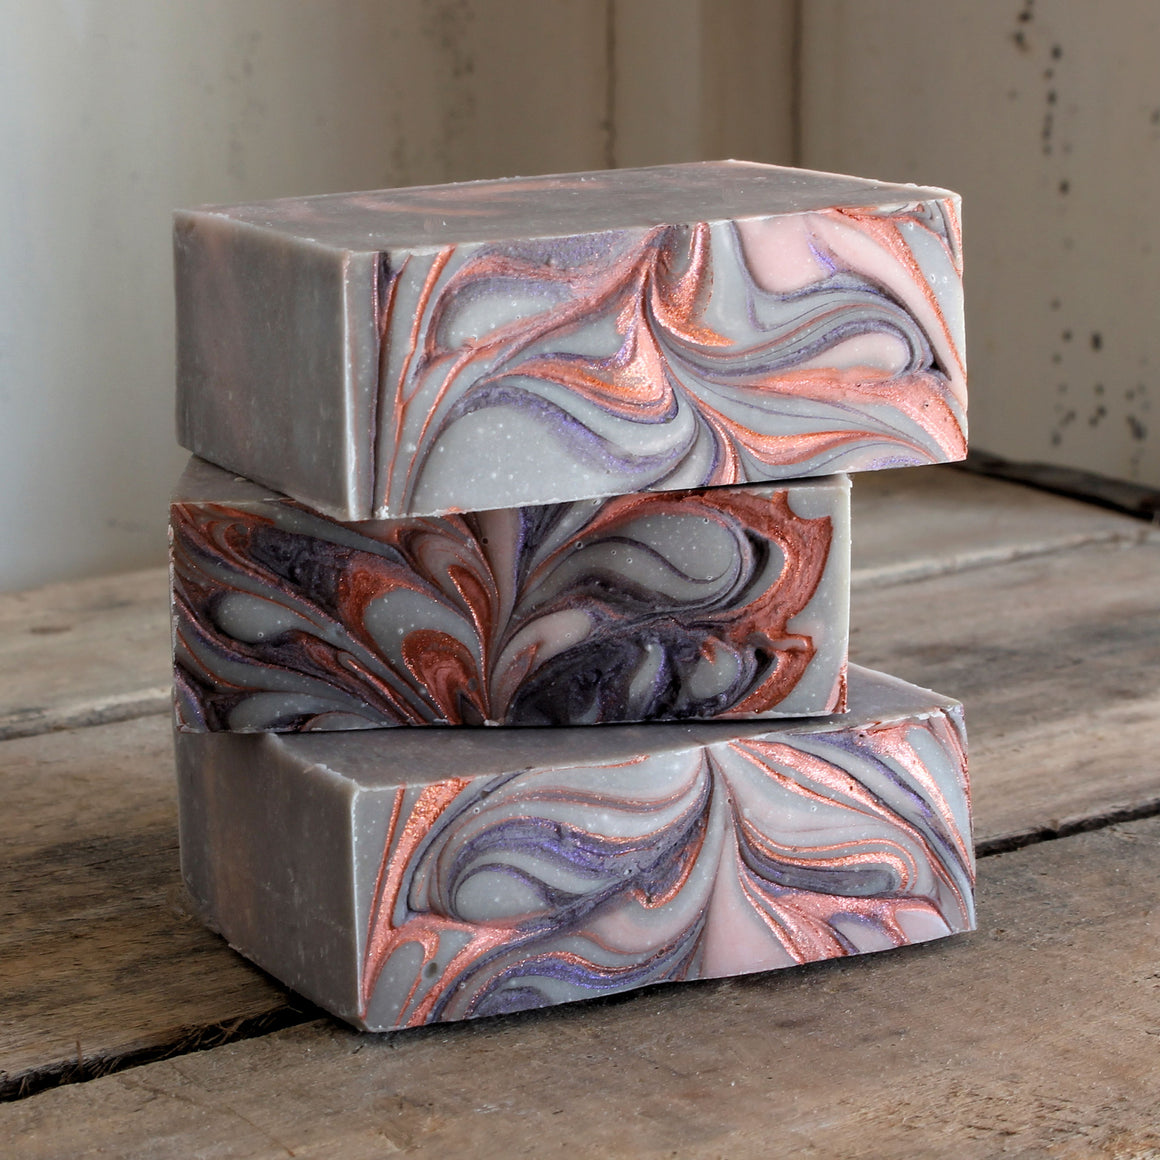 Lavender Geranium Cold Process Soap